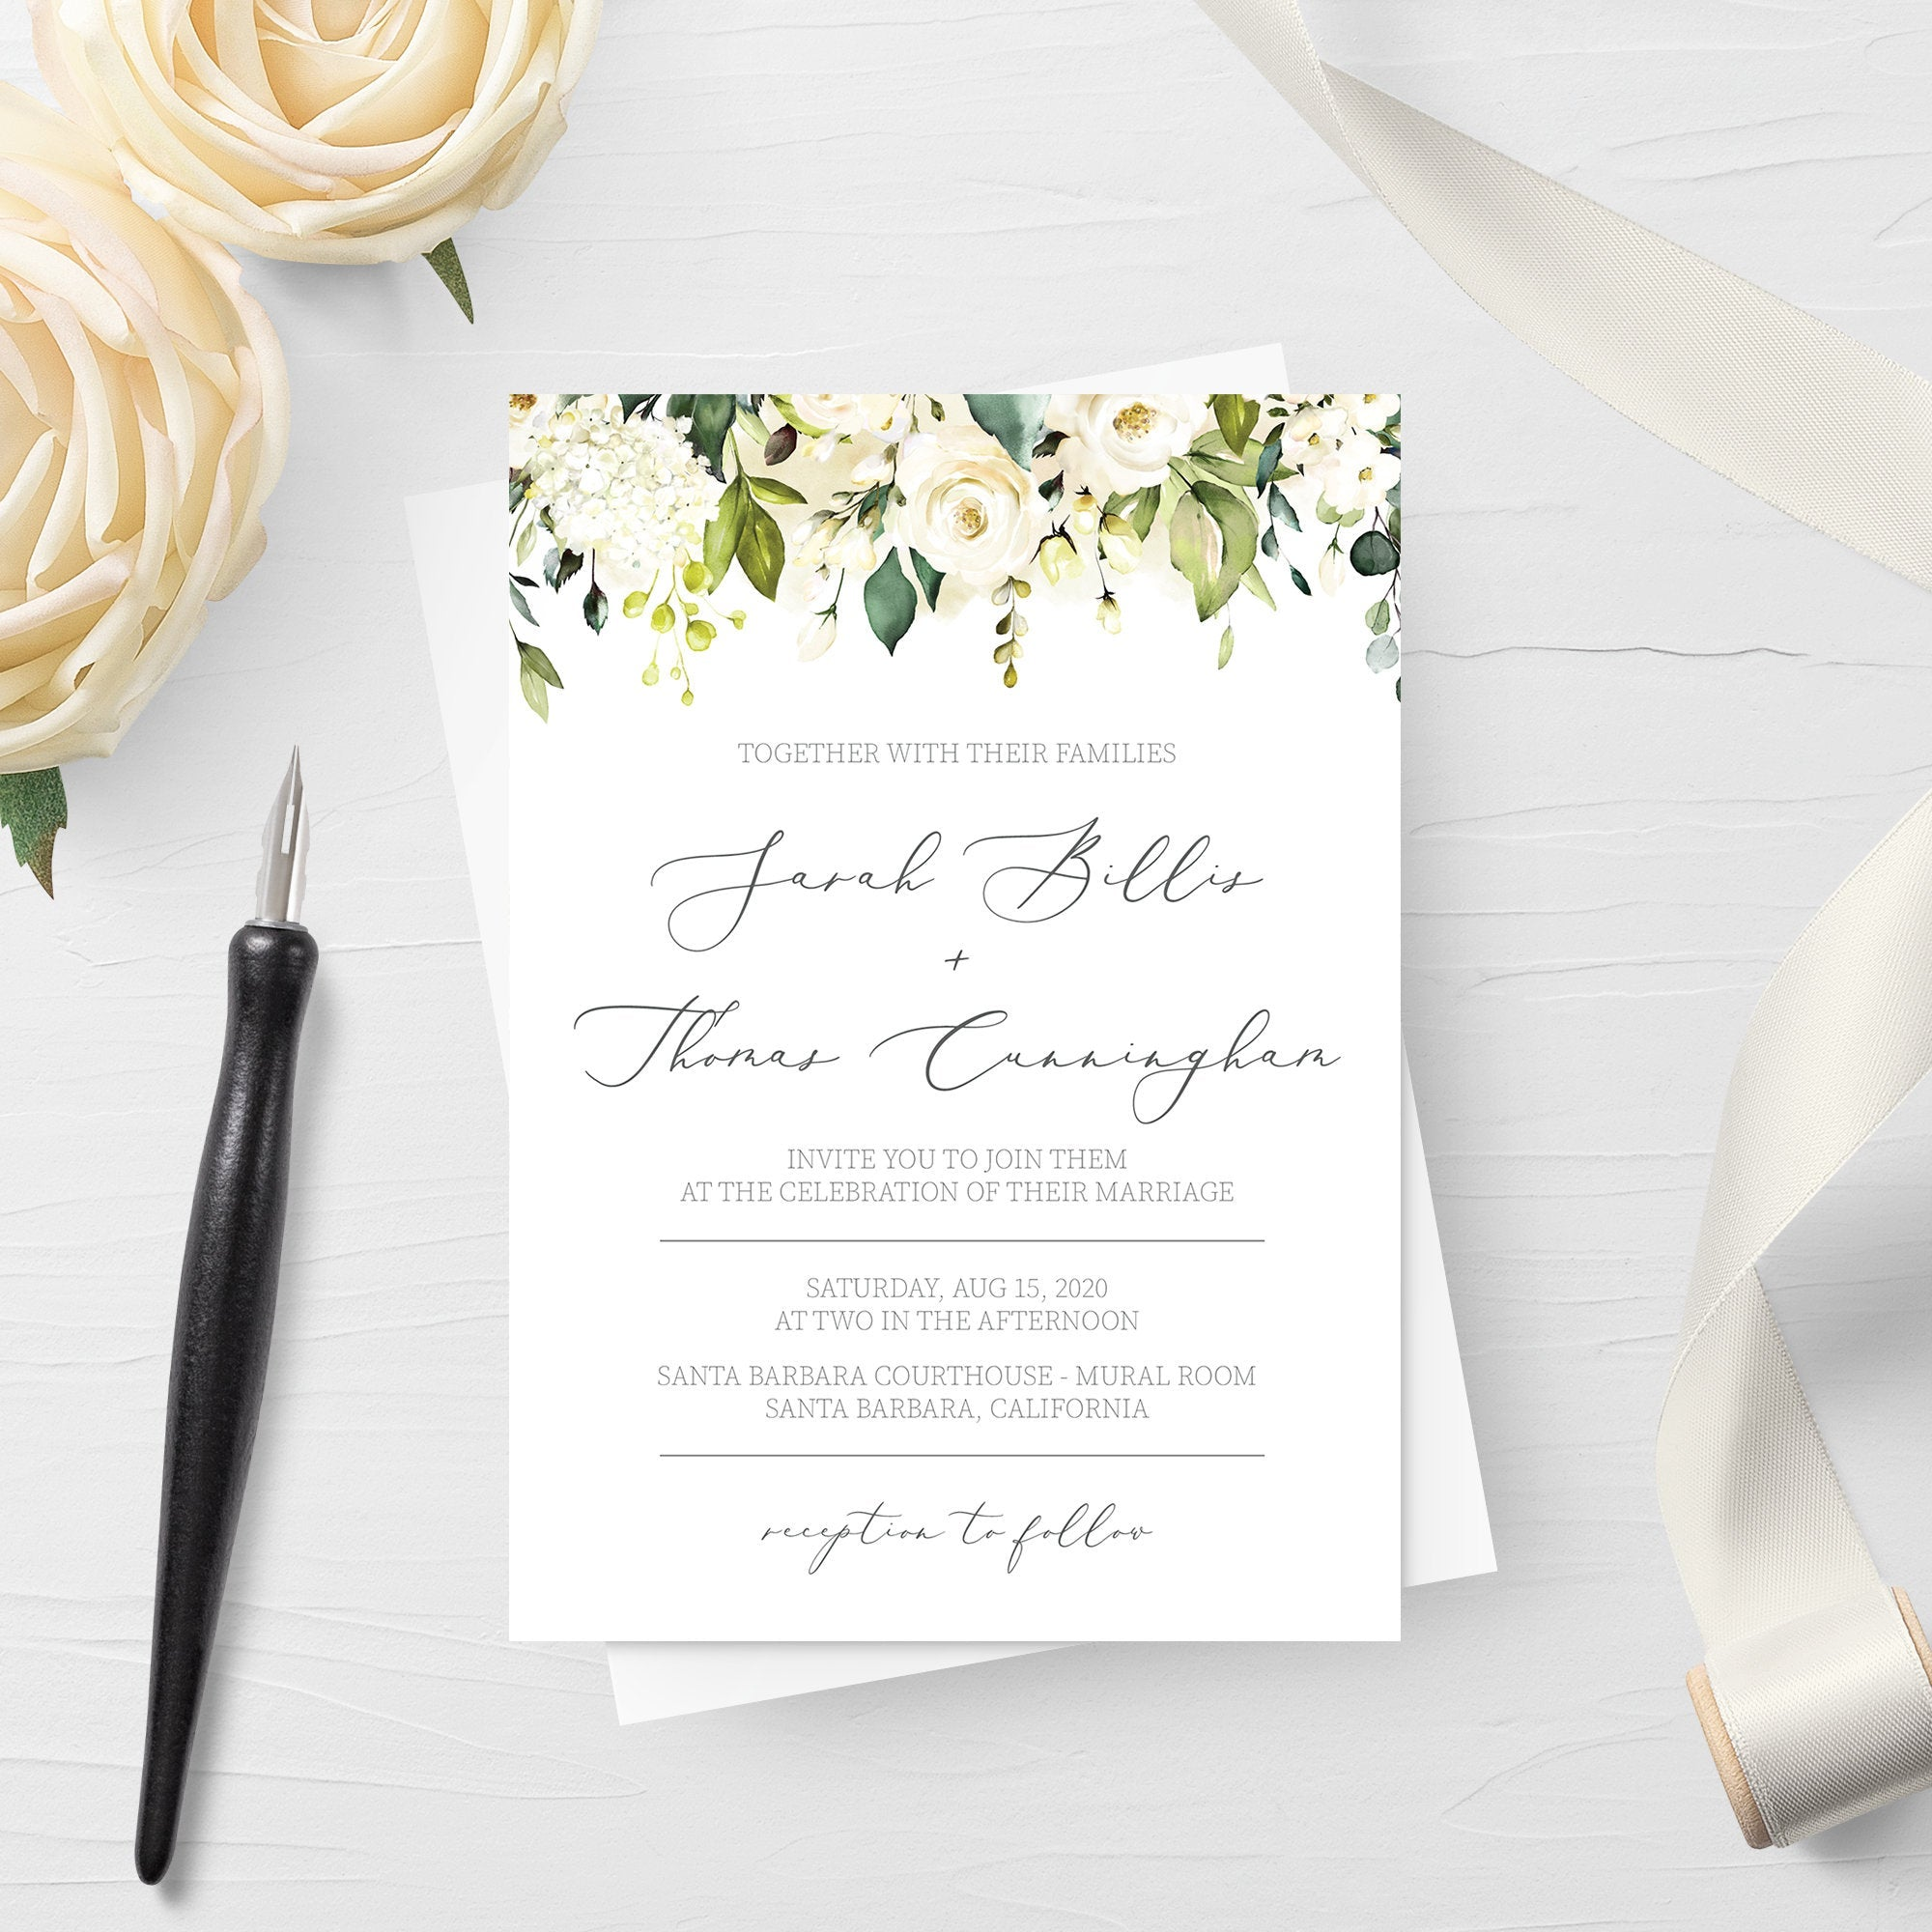 White Floral Greenery Wedding Invitation Template, Printable Wedding Invitation Set, Editable Wedding Invitation, DIGITAL DOWNLOAD - WRG100 - @PlumPolkaDot